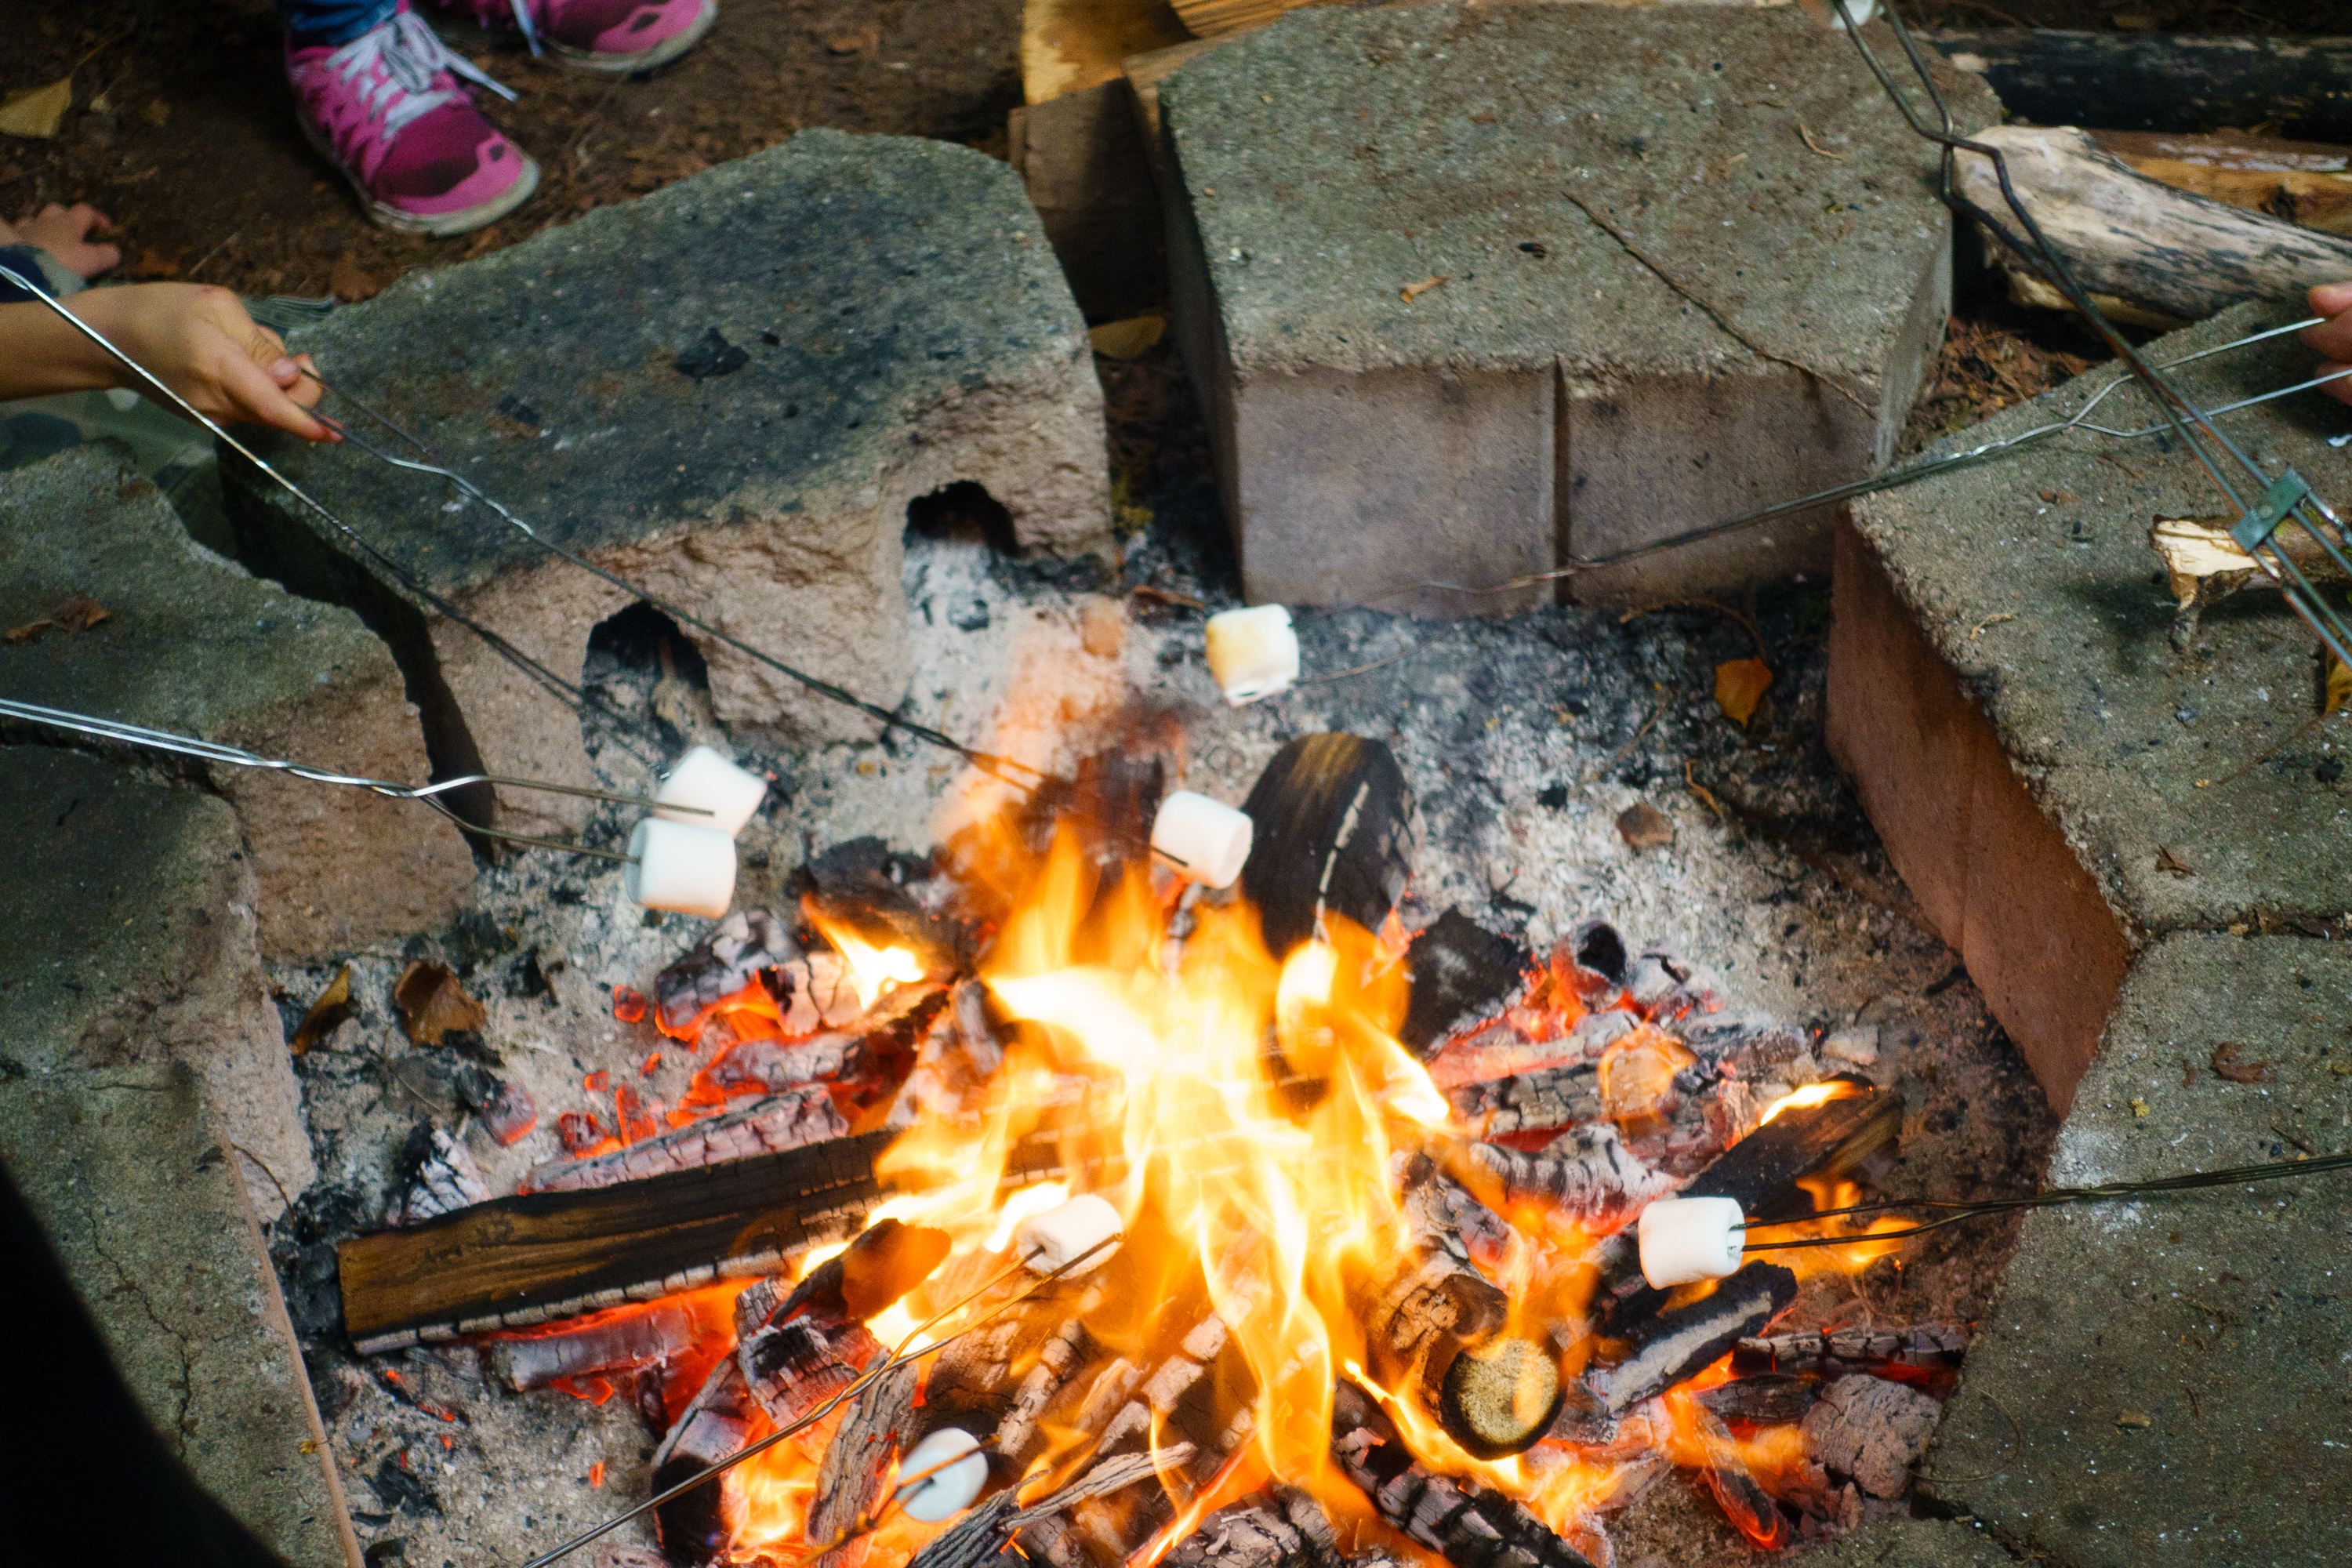 5 Tasty Camping Foods That Anybody Can Make